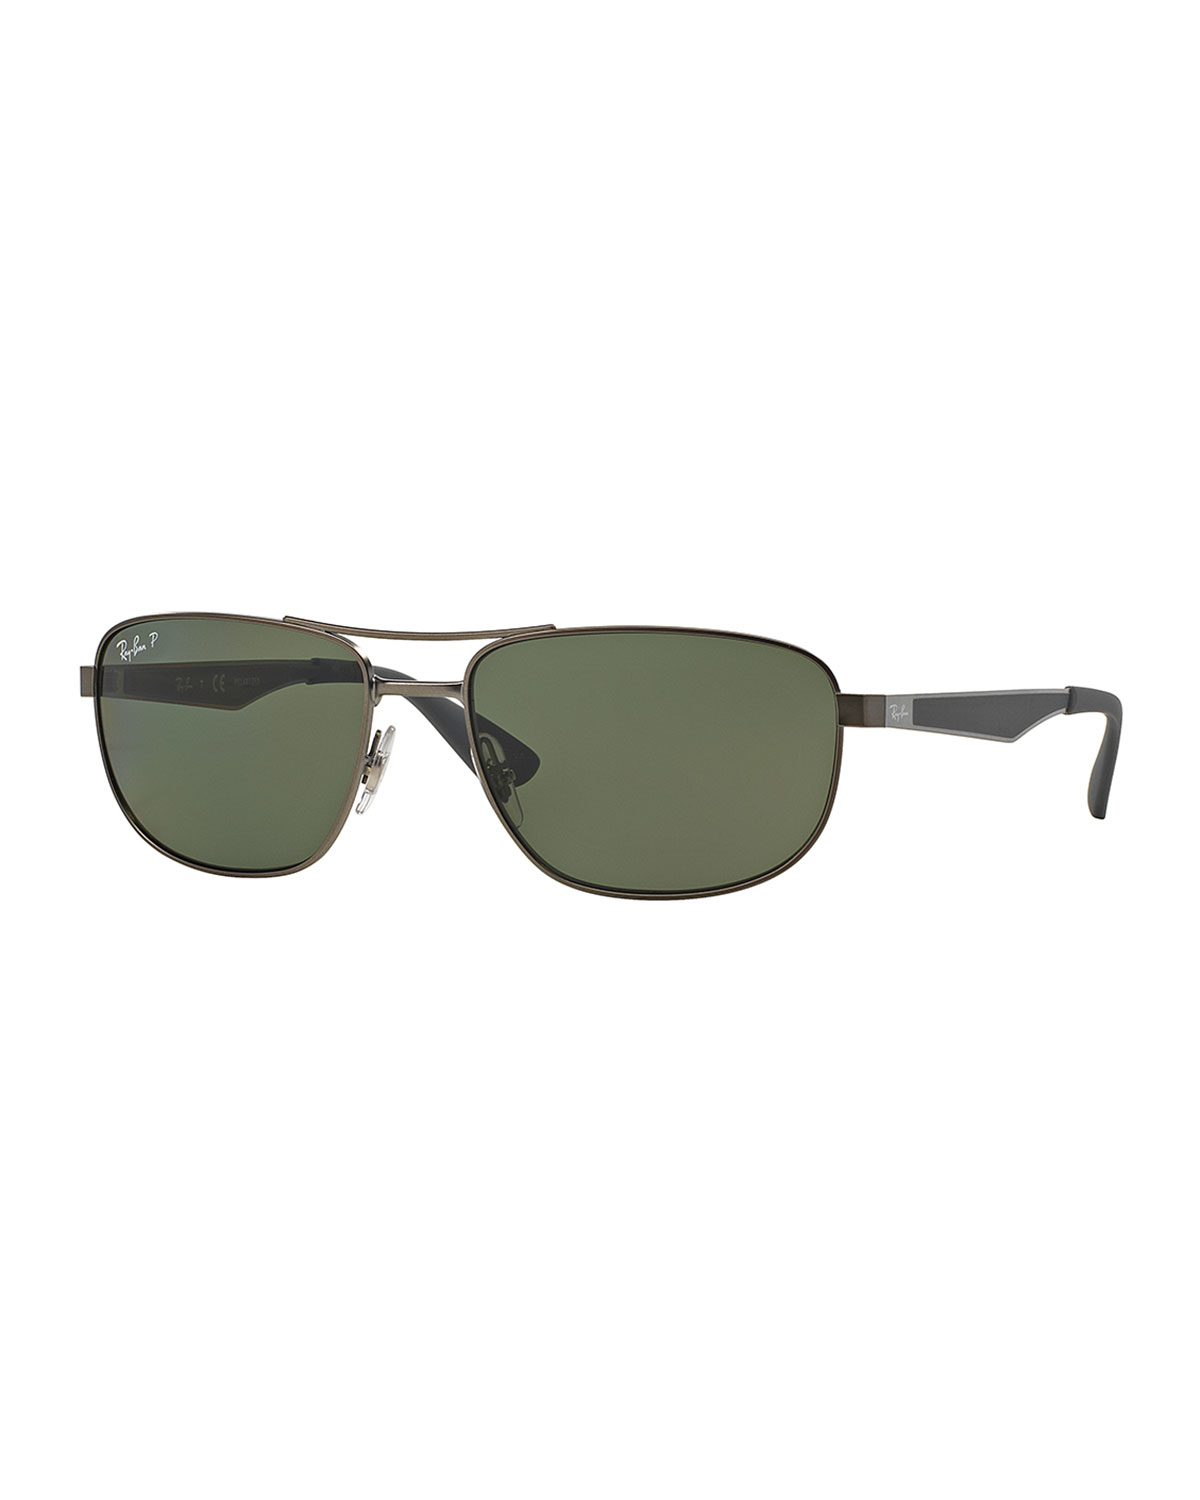 b97240d422 Ray Ban Glasses For Less « Heritage Malta